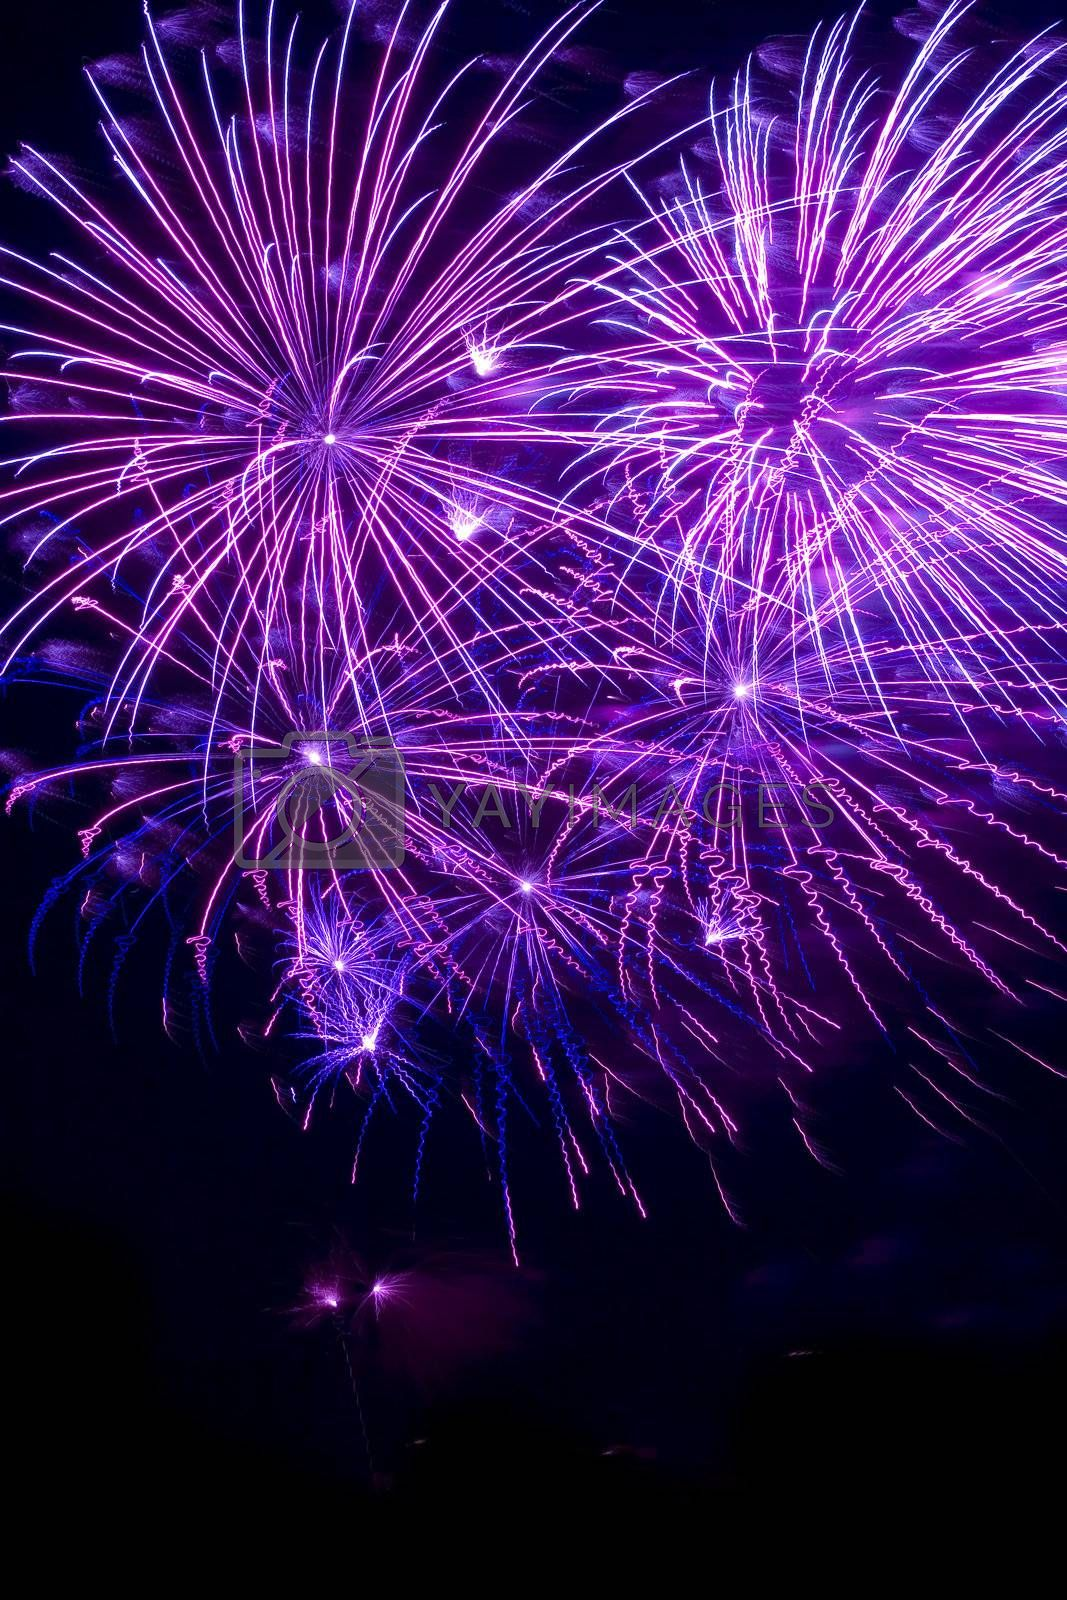 Purple fireworks in a dark sky